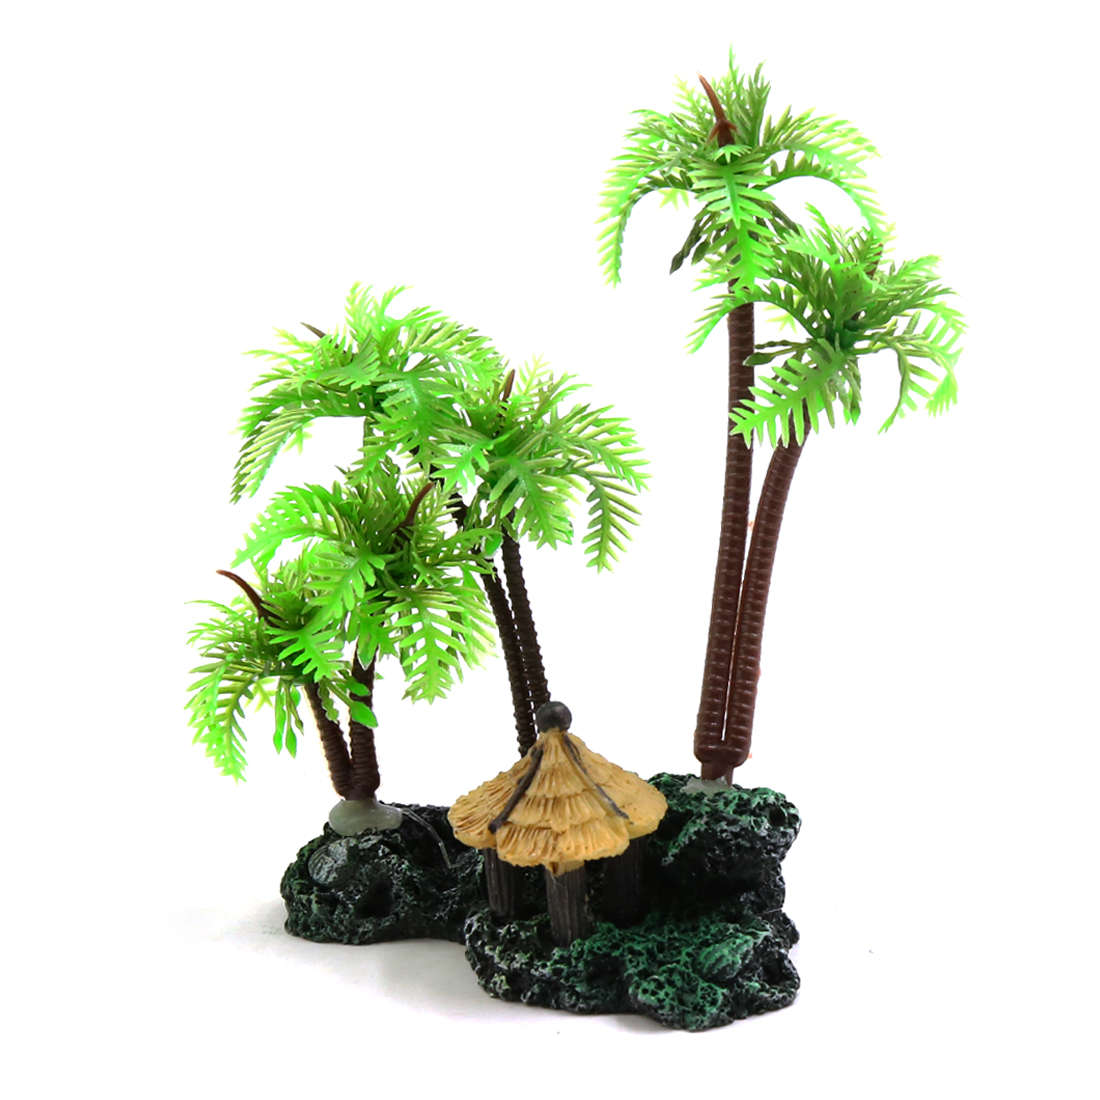 Mini Coconut Tree Aquarium Terrarium Reptile Tank Plant Ornament